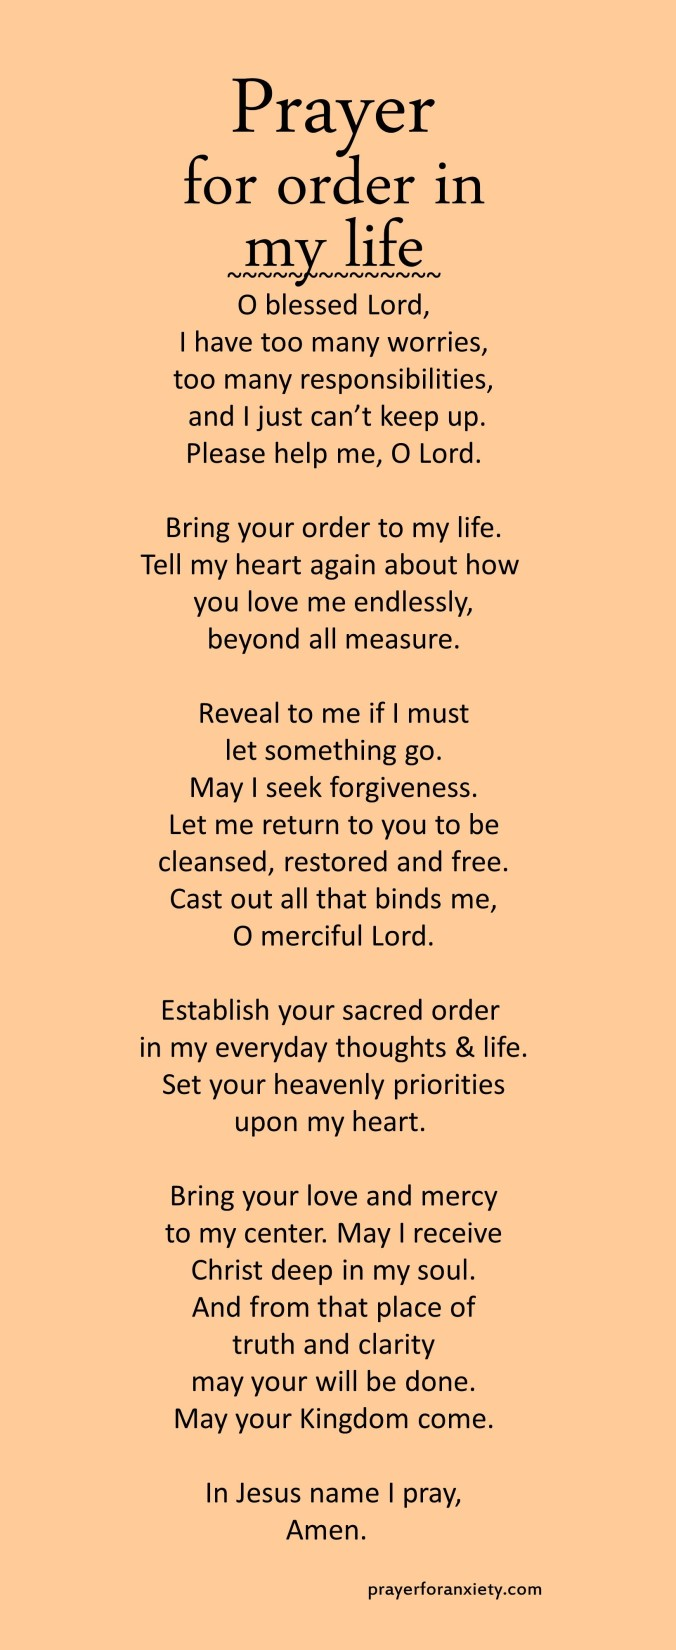 Prayer for order in my life